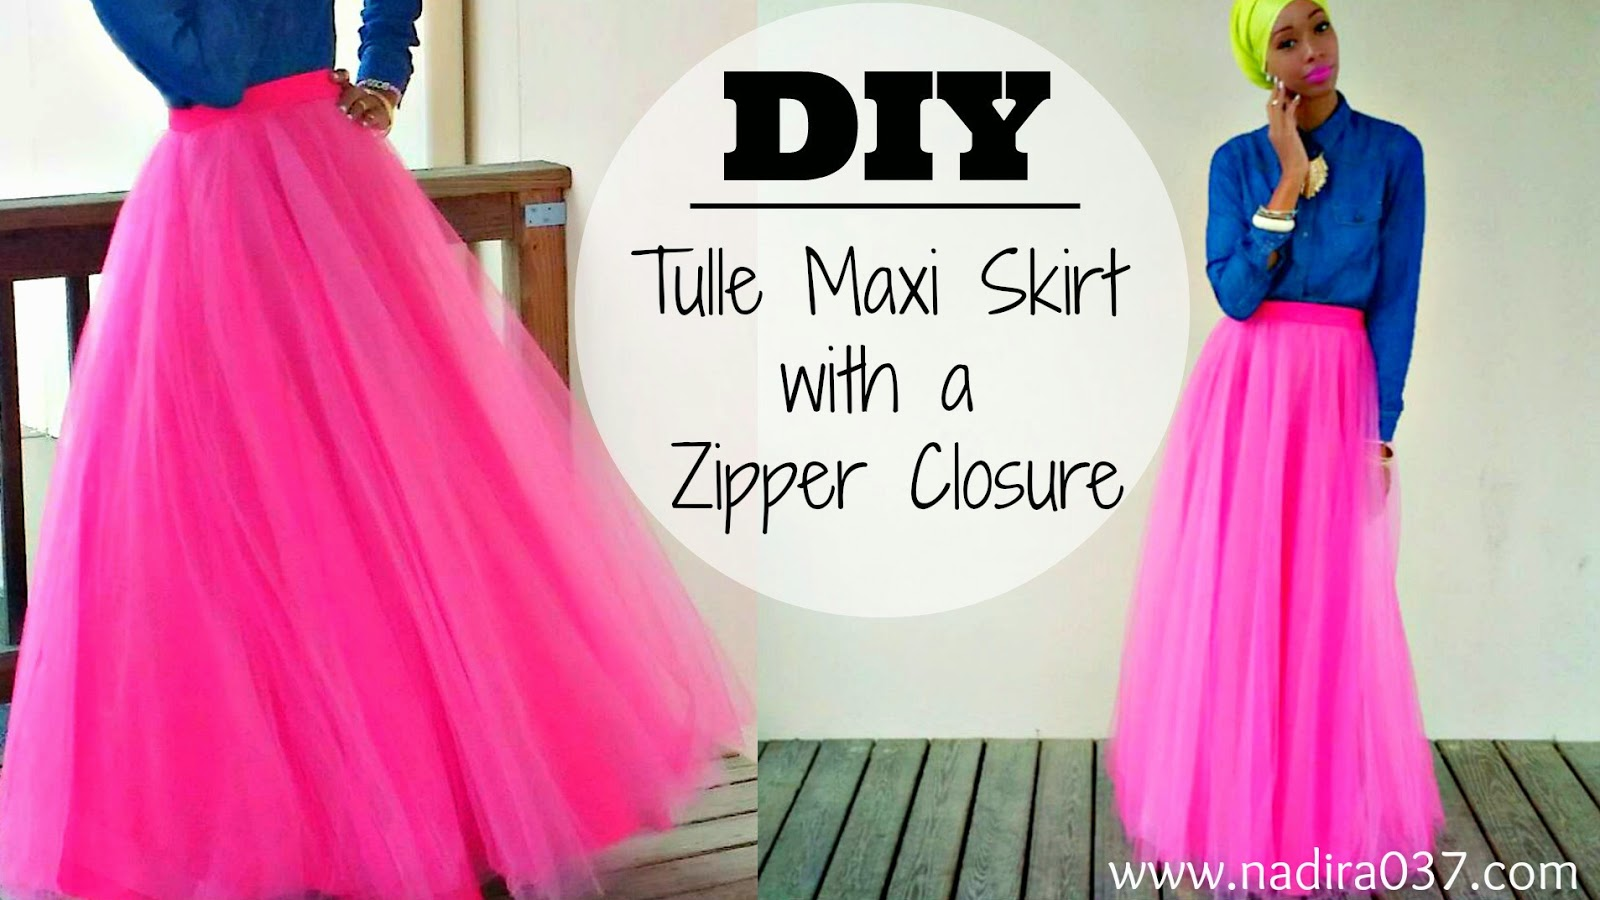 53f685279f4 DIY | Tulle Maxi Skirt | Zipper Closure | Tutorial - Nadira037